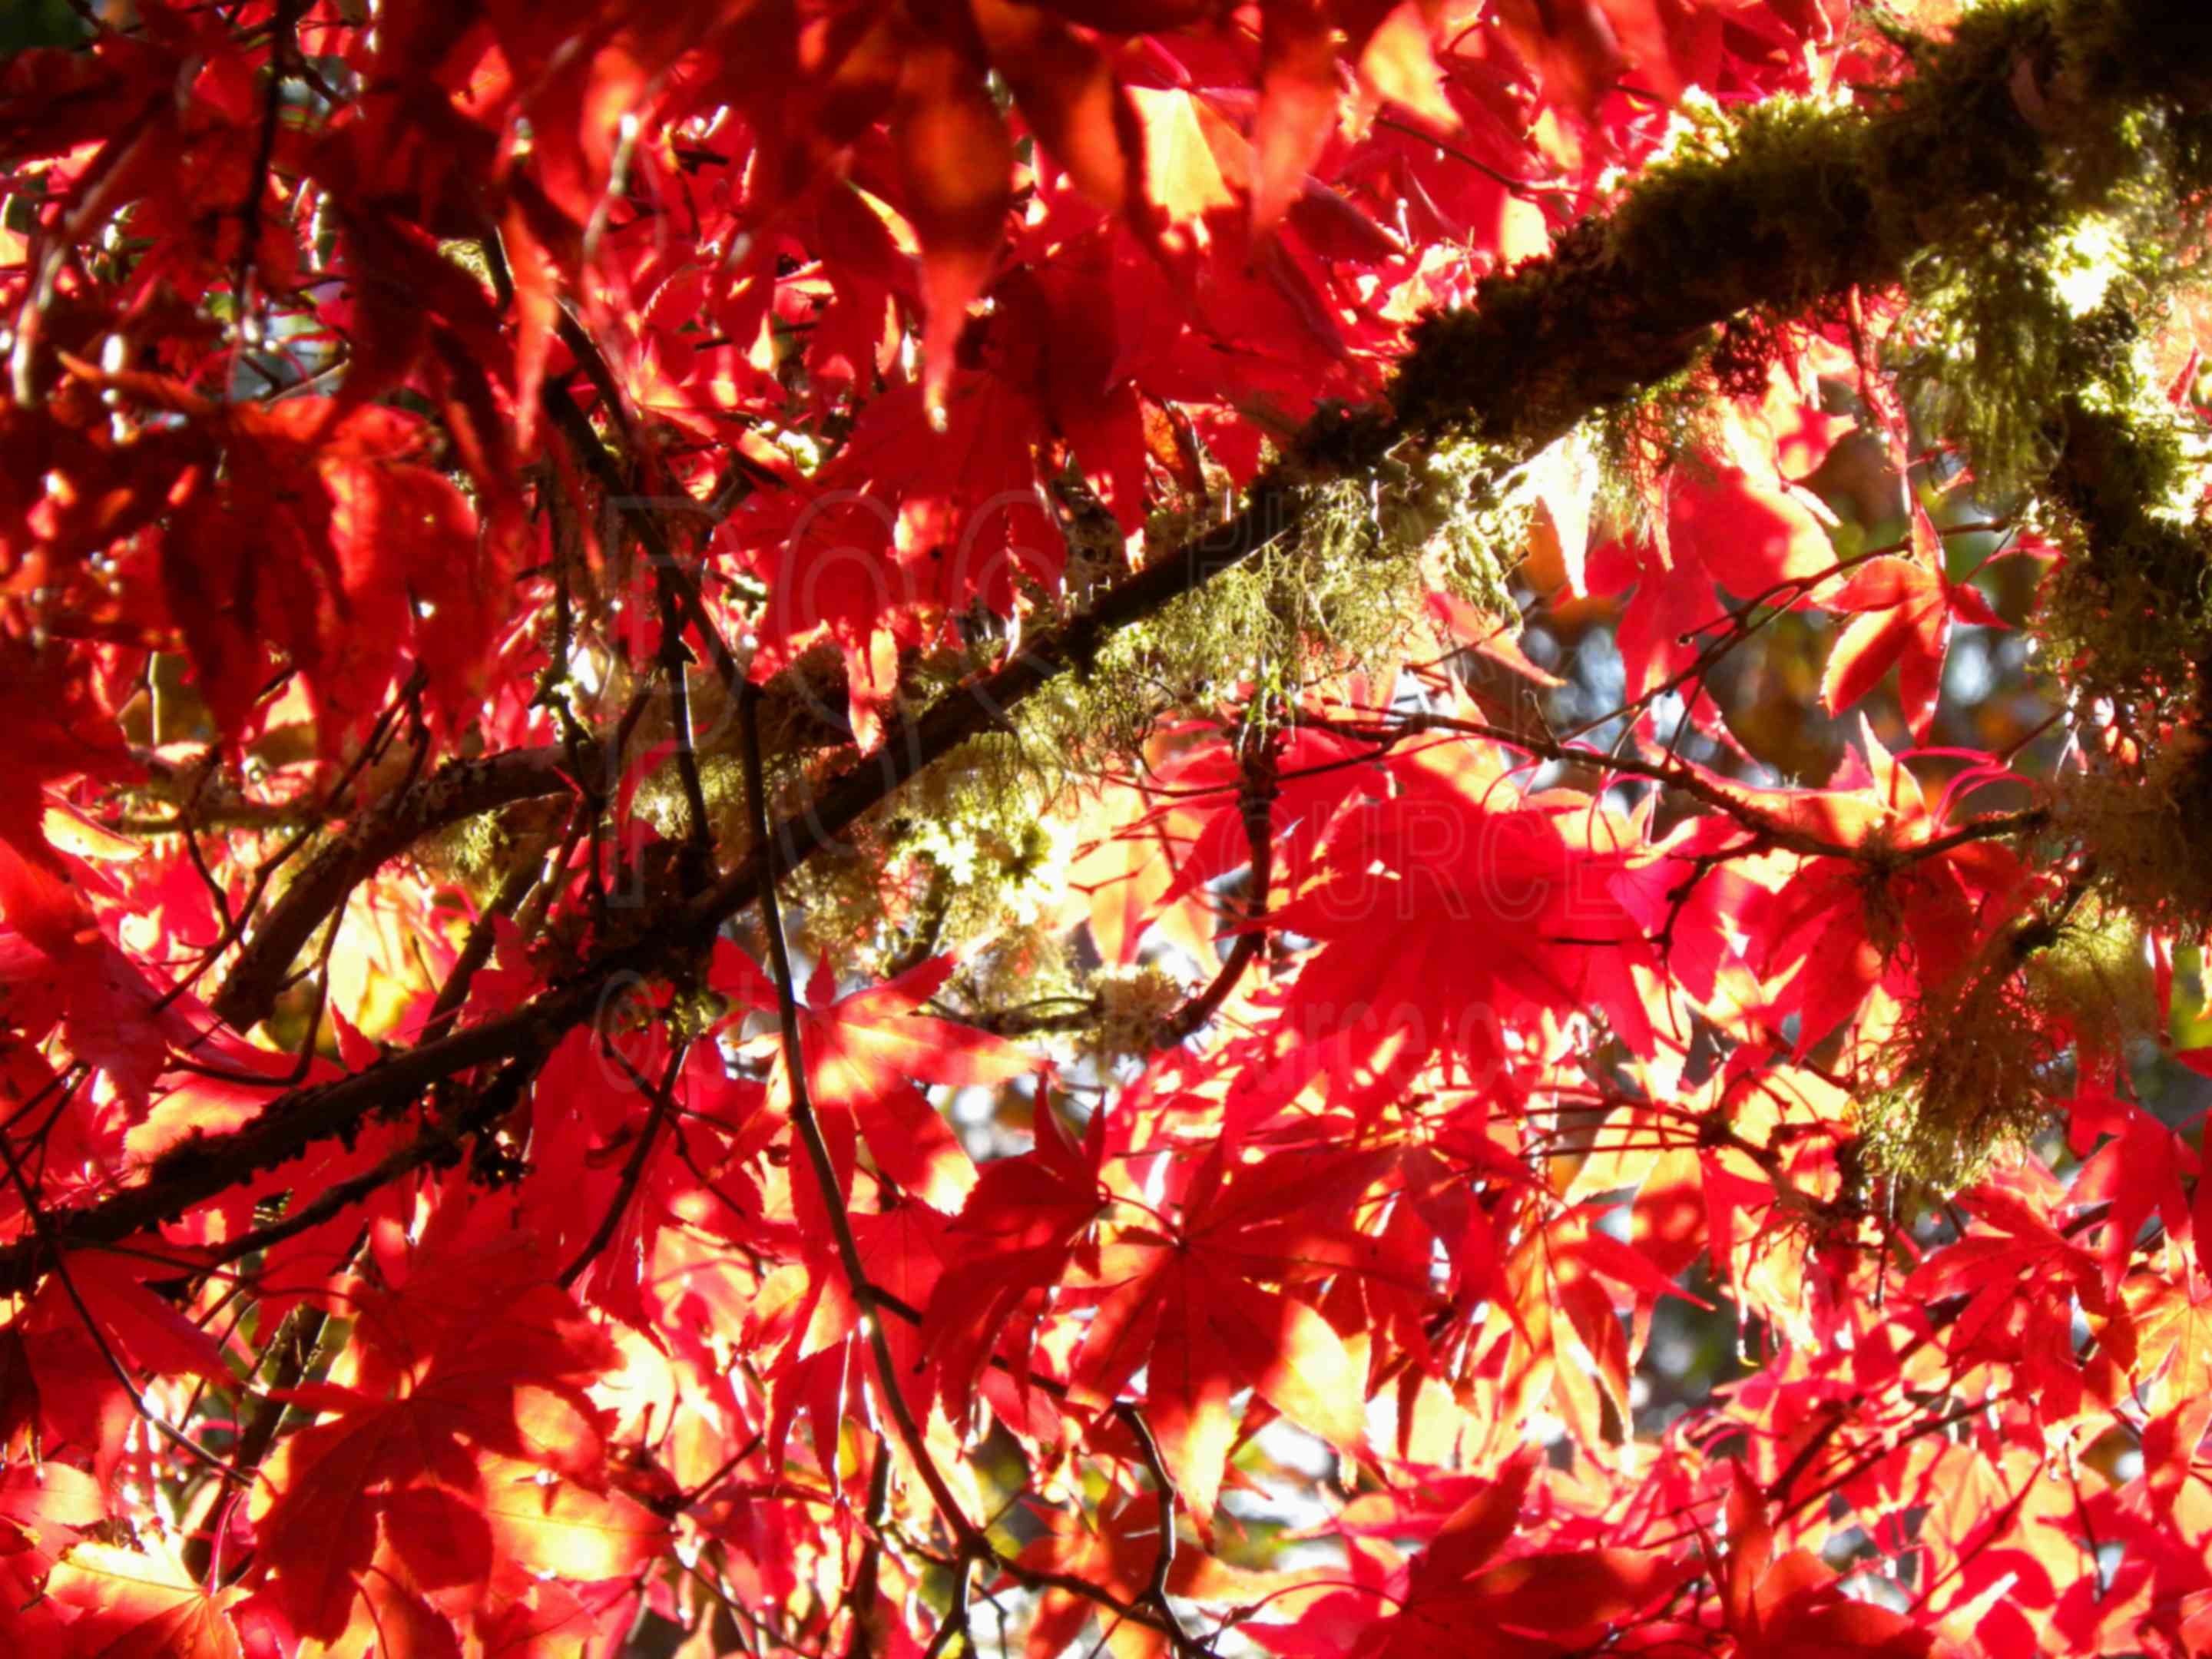 Japanese Maple Leaves,leaf,red,leaves,maple,fall,season